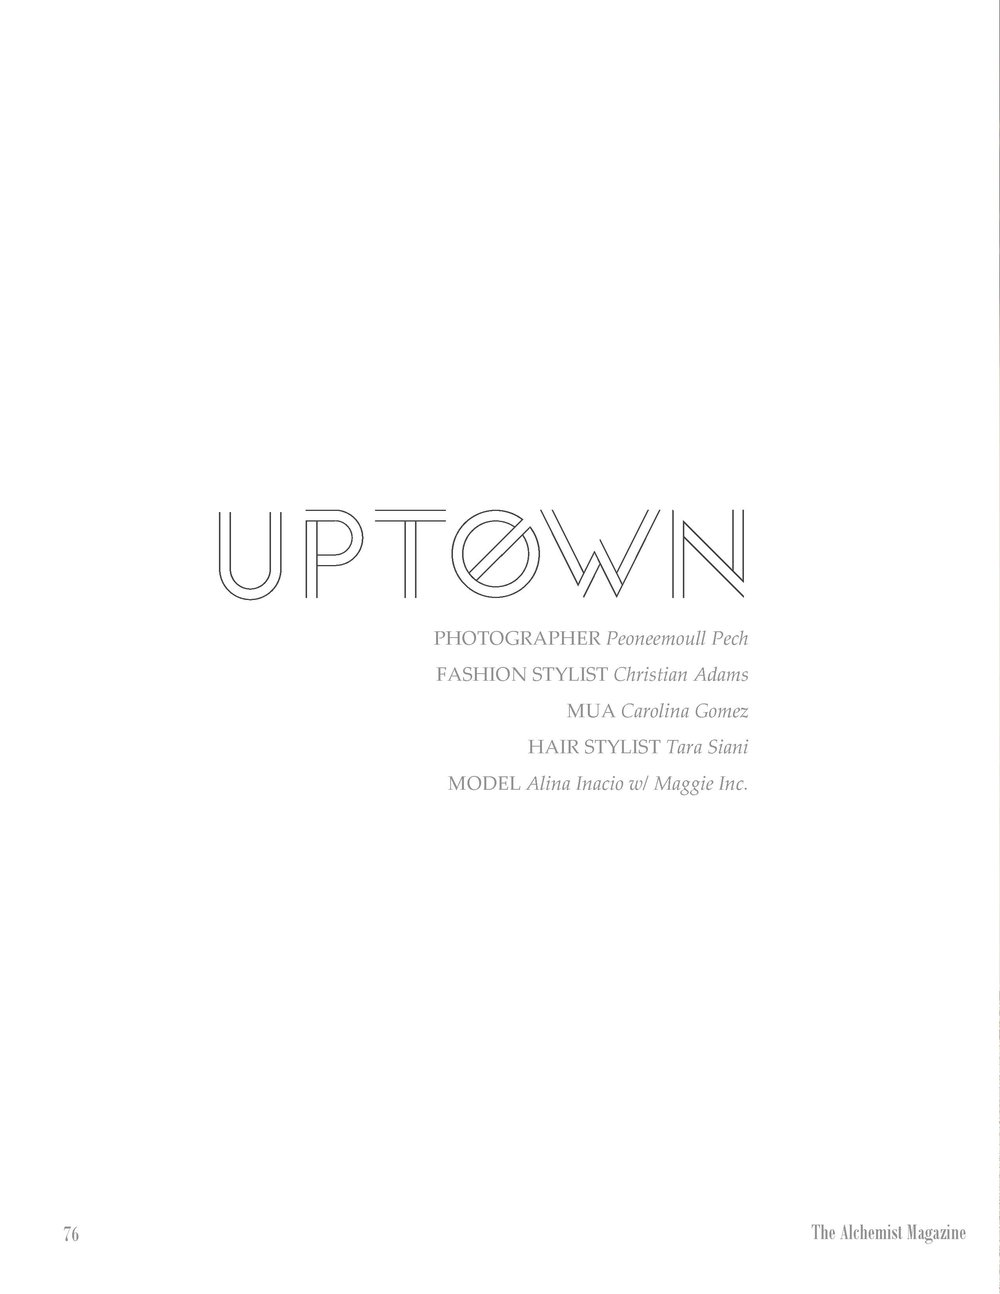 UPTOWN - Issue 19 v3 - The Alchemist Magazine-4.jpg